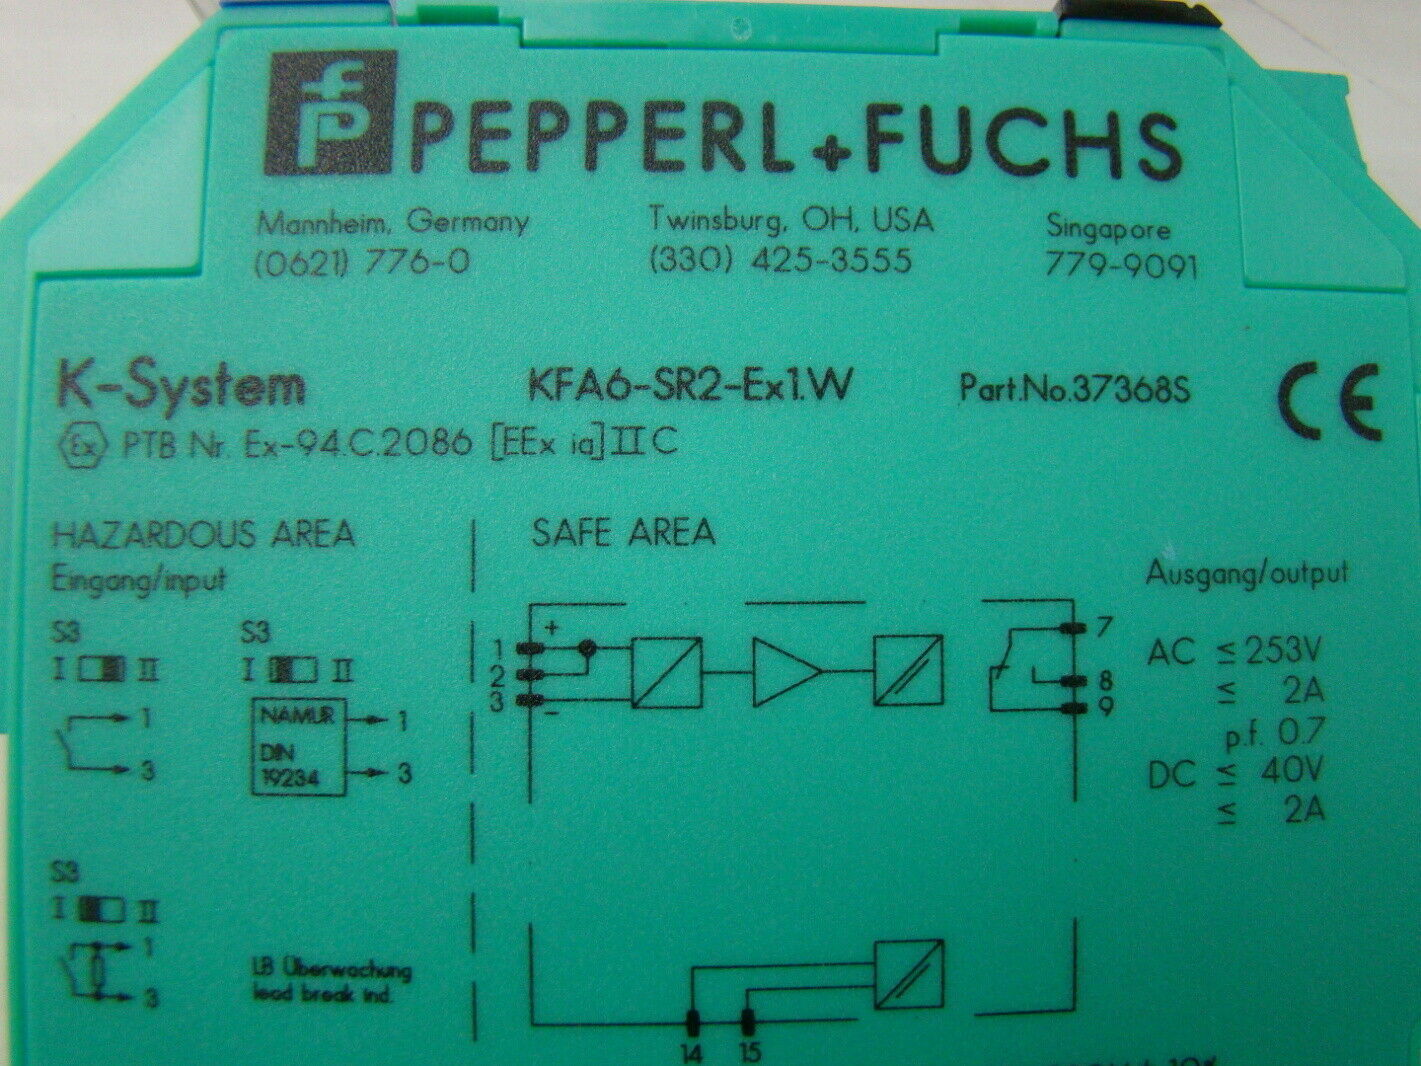 jf07188 pepperl fuchs isolated switch amplifier kfa6 sr2 ex1w 10 pepperl fuchs isolated switch amplifier kfa6 sr2 ex1 w ebay kfd2-sr2-ex1.w wiring diagram at gsmportal.co